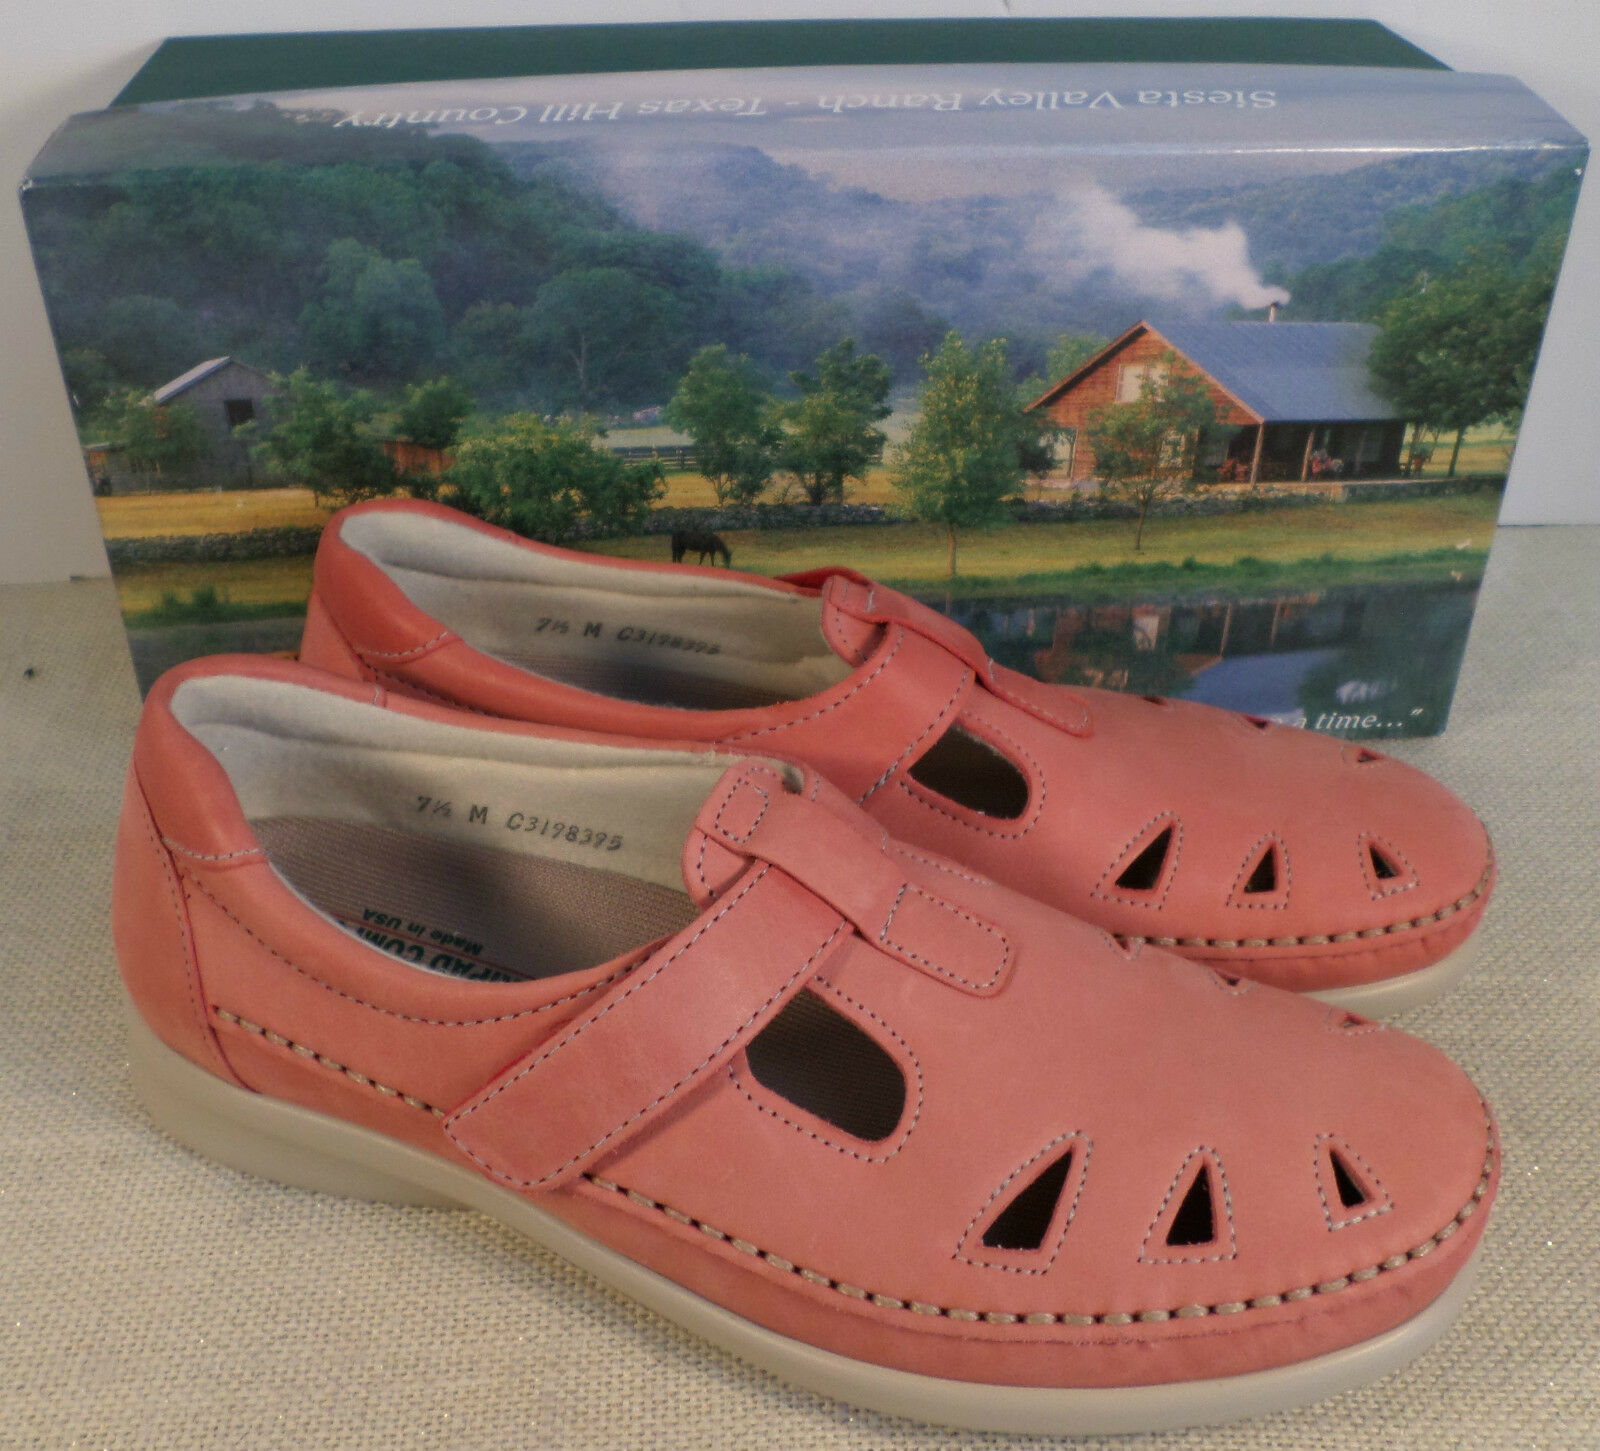 SAS ROAMER CORAL CORAL CORAL WOMEN'S PINK CORAL LEATHER LOAFER SHOES NEW IN BOX d9bc4e